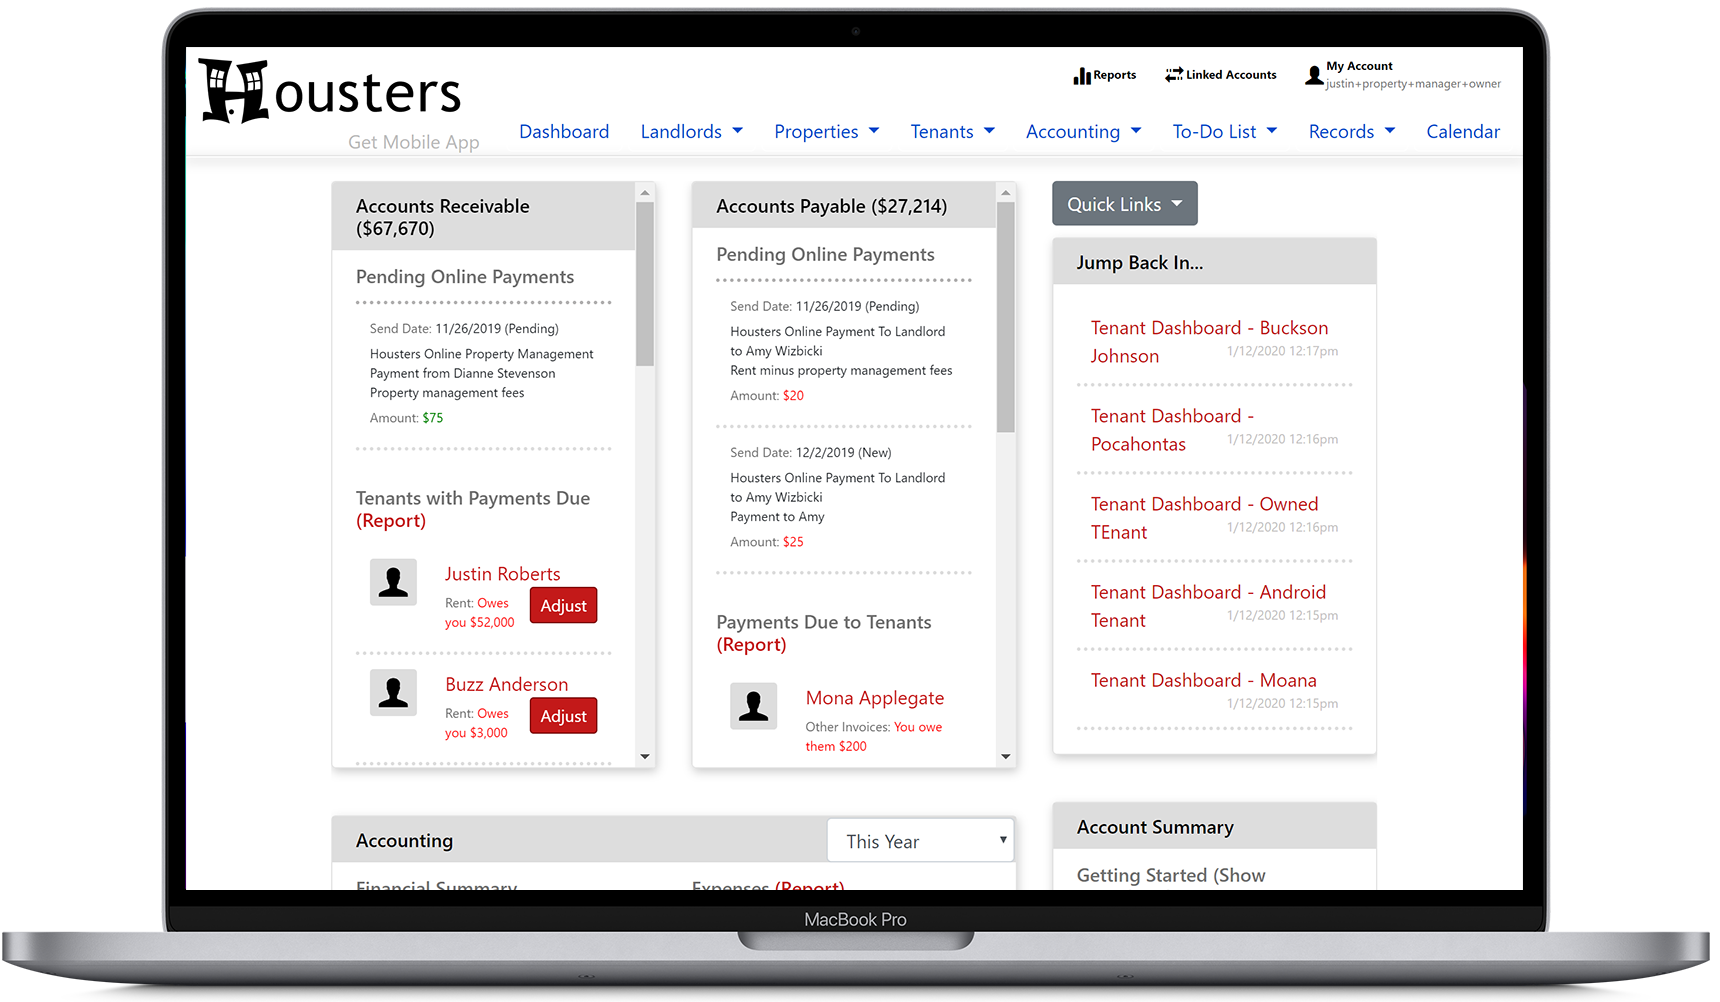 View the main property manager software dashboard, accounts receivable, and accounts payable